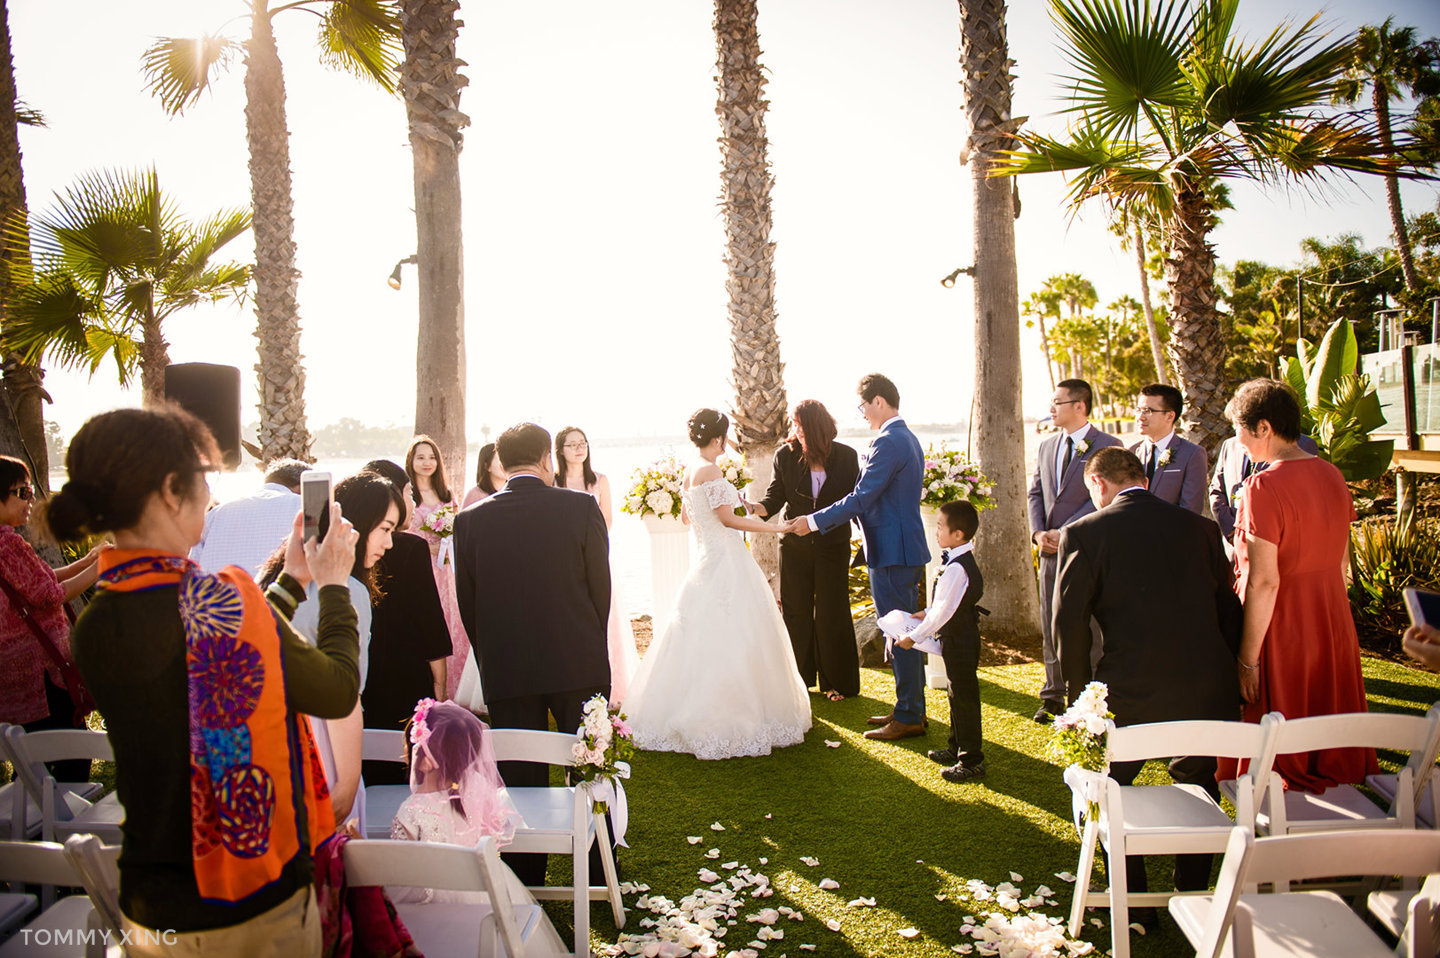 Paradise Point Resort Wedding Xiaolu & Bin San Diego 圣地亚哥婚礼摄影跟拍 Tommy Xing Photography 洛杉矶婚礼婚纱照摄影师 117.jpg